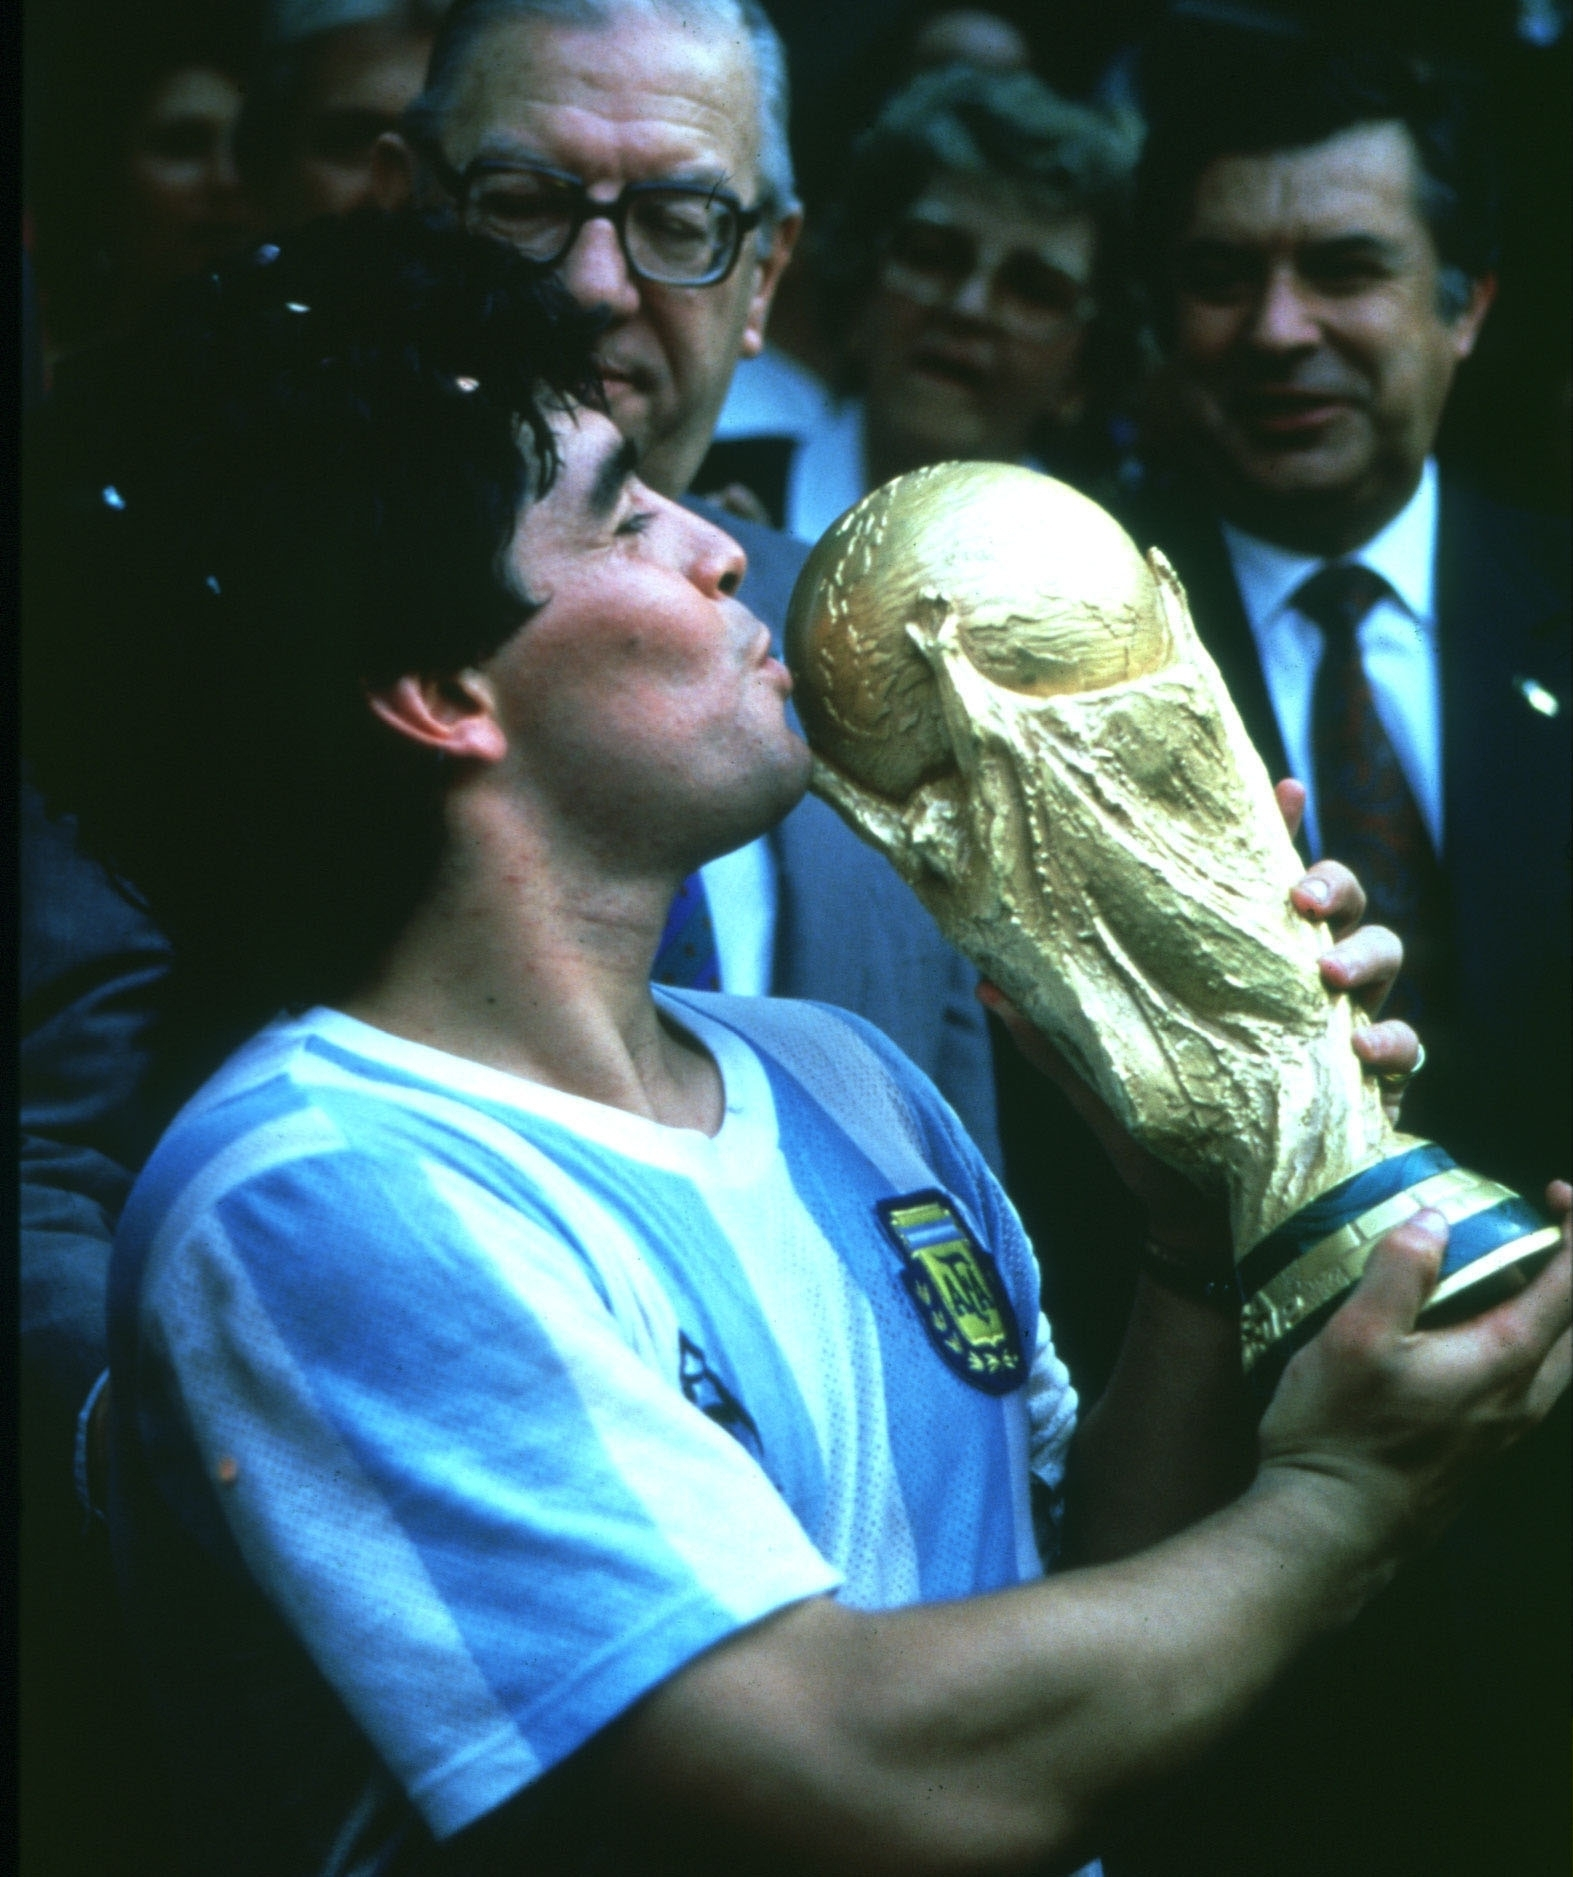 1986 FIFA World Cup in Mexico Diego Armando Maradona *30.10.1960- Football player, member of the Argentine national team - Maradona kissing the World Cup trophy - 29.06.1986